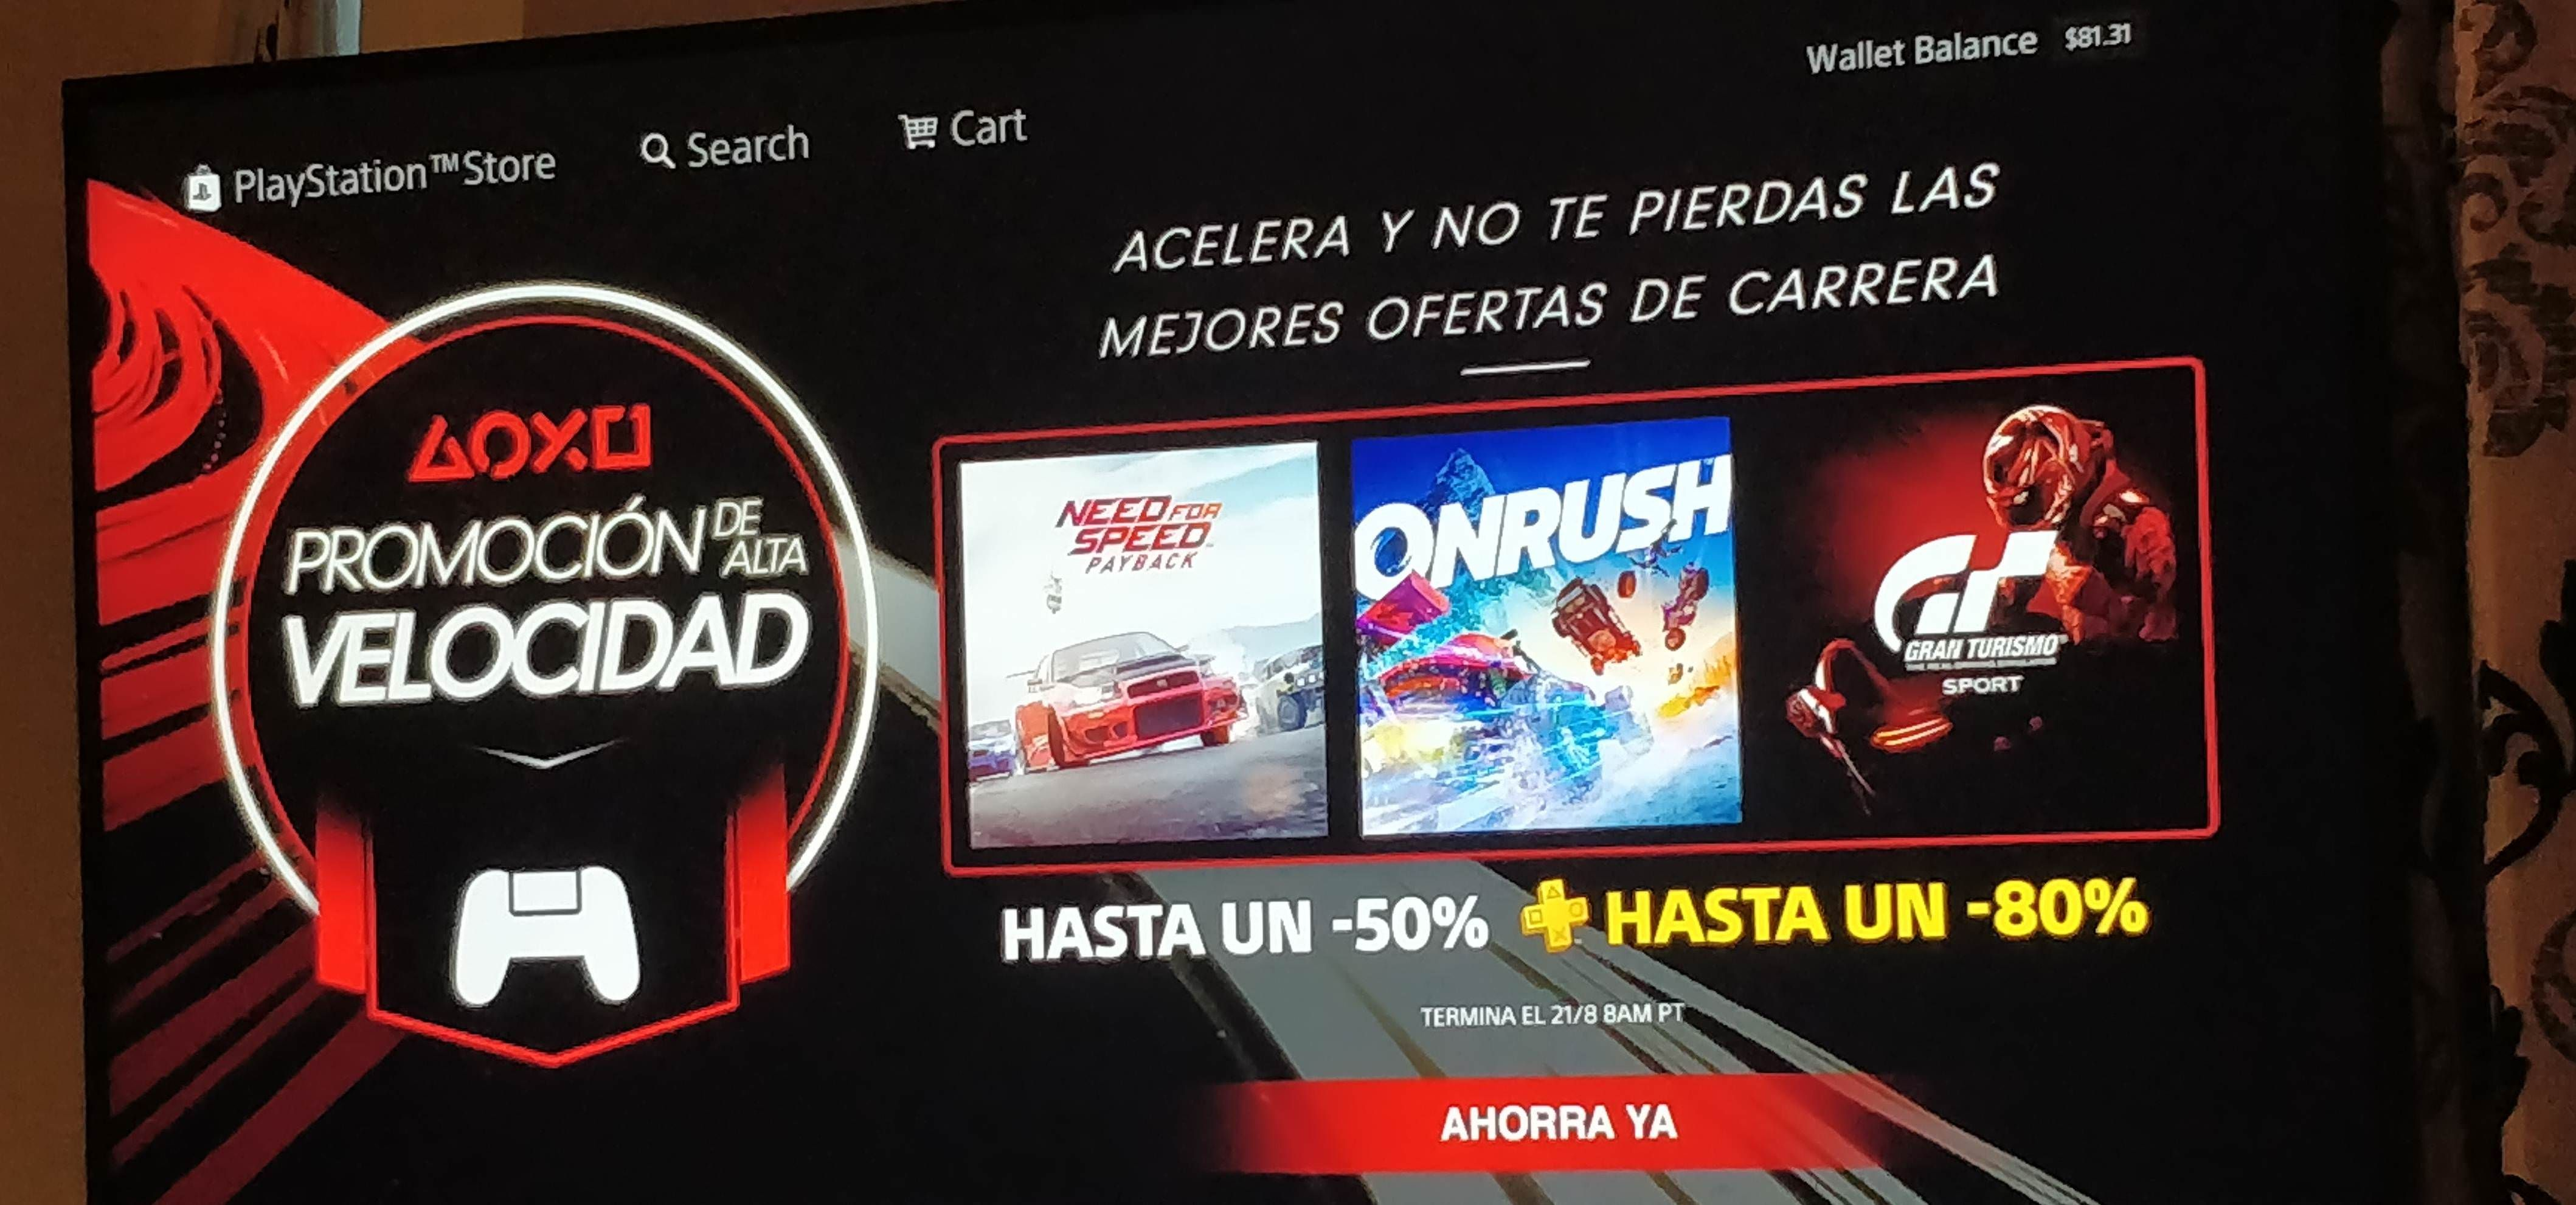 image] Anyone else\'s (USA) PlayStation store gone a bit Spanish ...